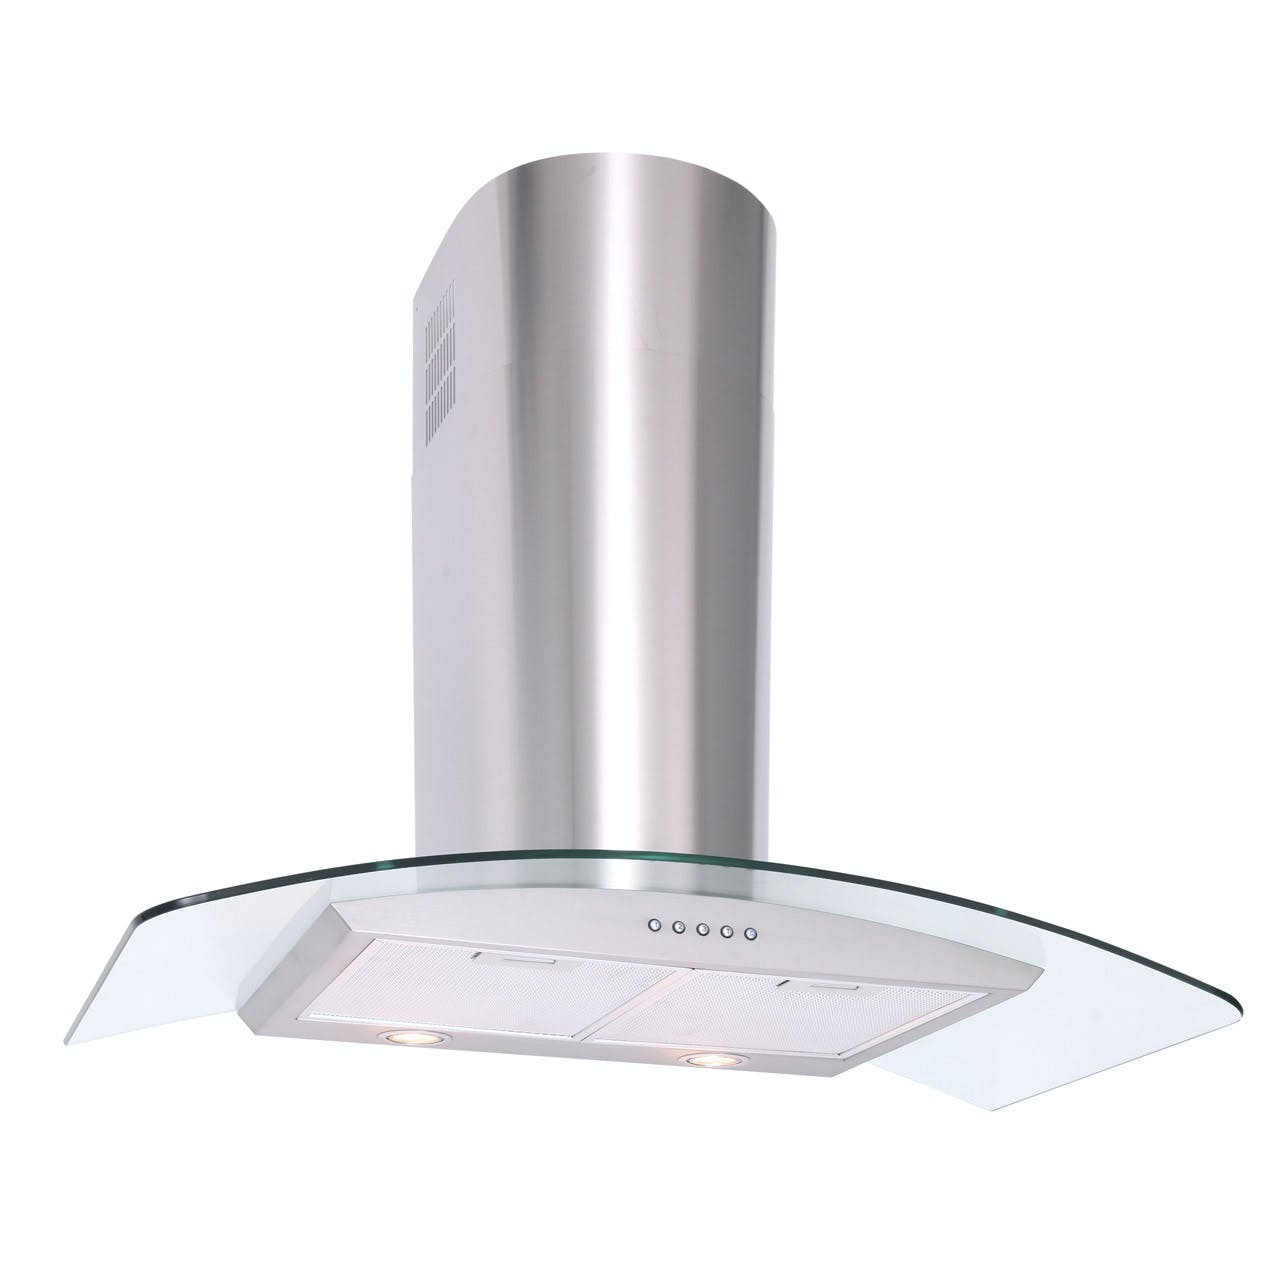 Cooker Hood With A Window ~ Luxair la cvd ss cm curved glass cooker hood in